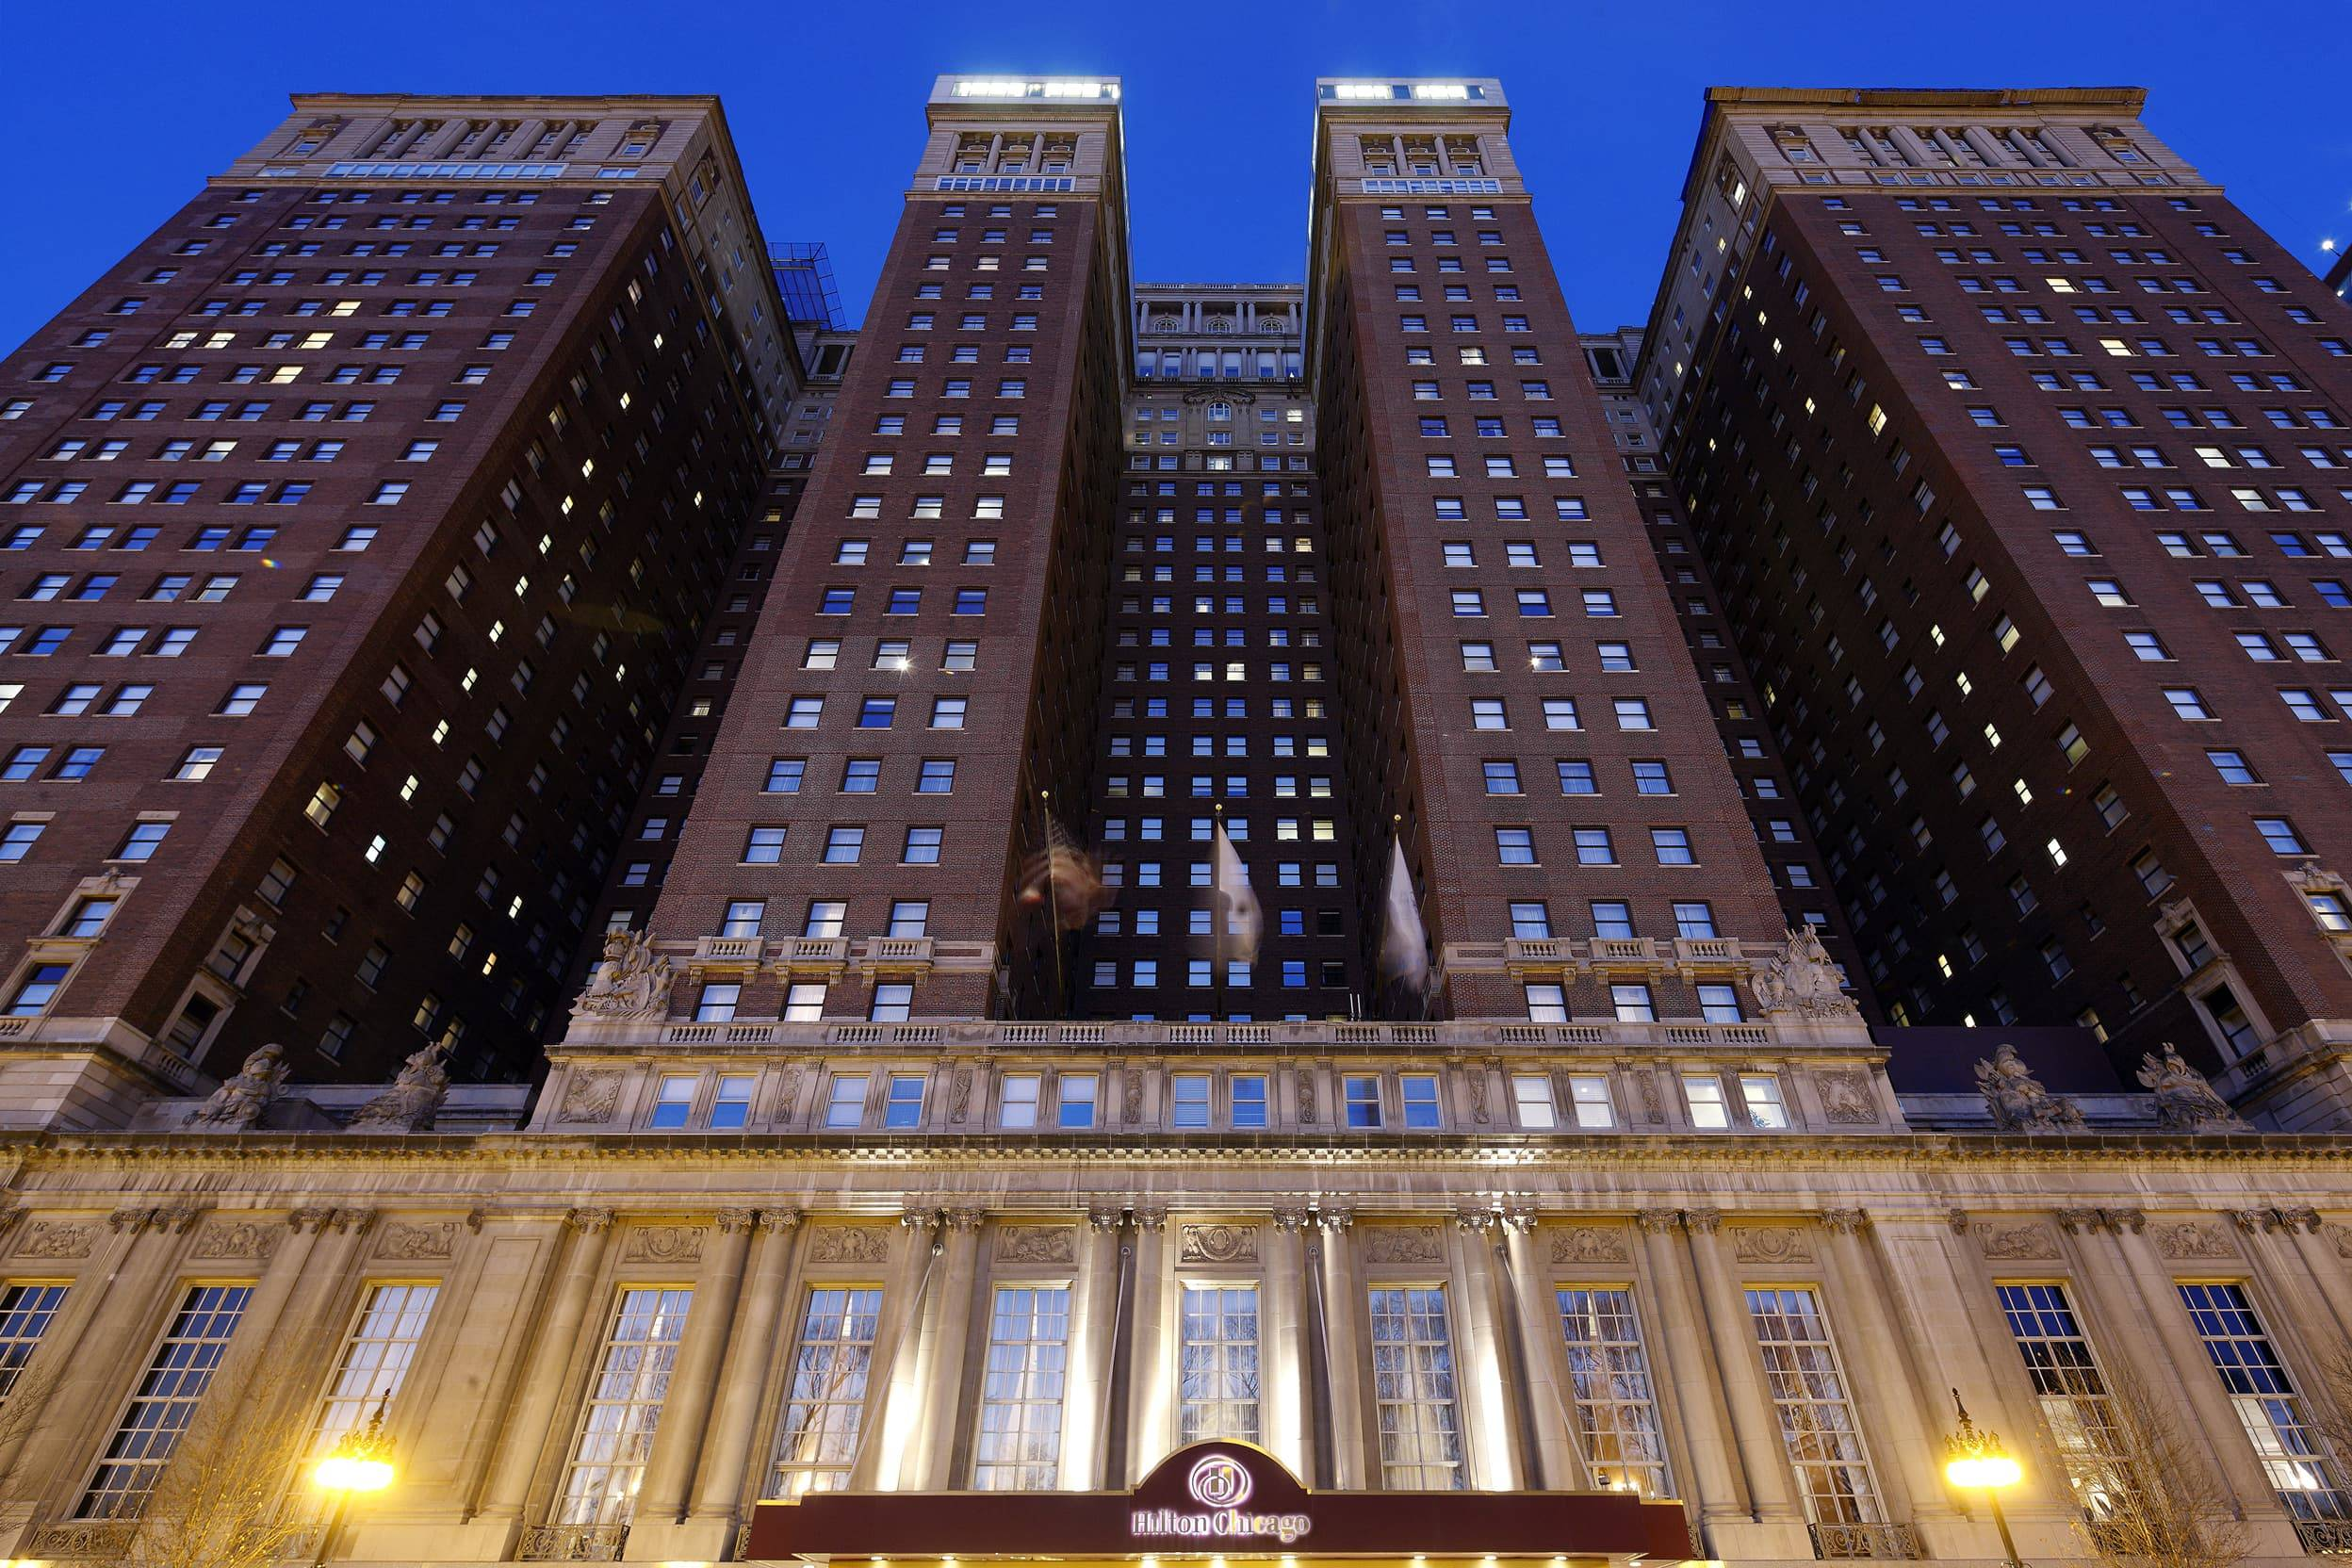 While some towns spent thousands for officials to attend the Illinois Municipal League conference at the Hilton Chicago this past September, others chose not to attend.